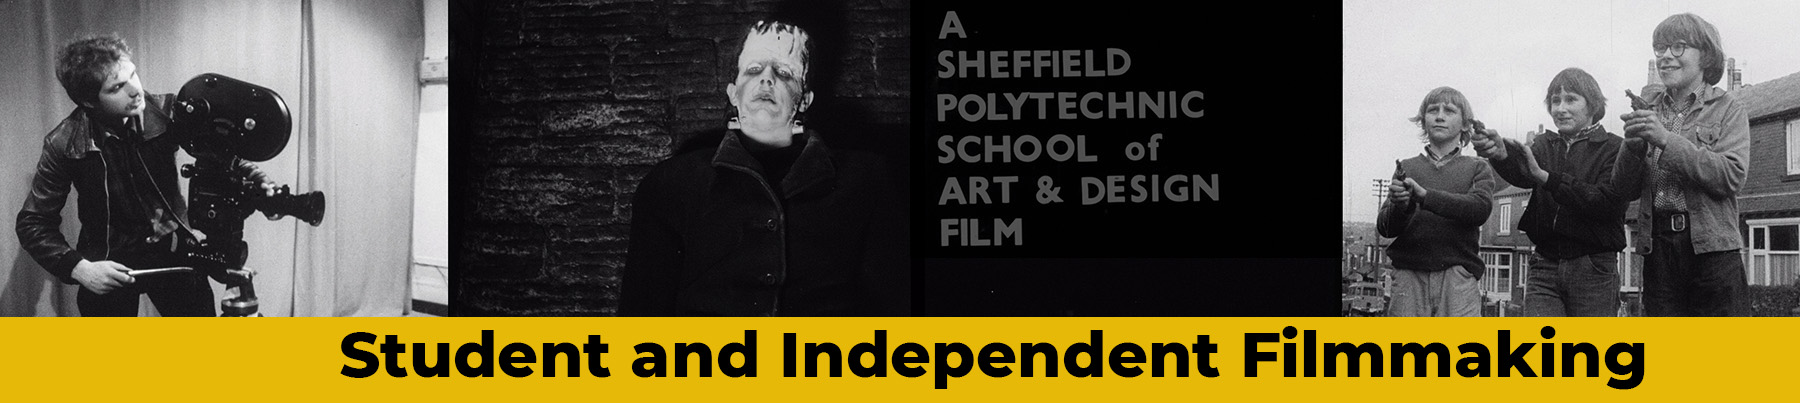 Banner image for The Student and Independent Filmmaking page